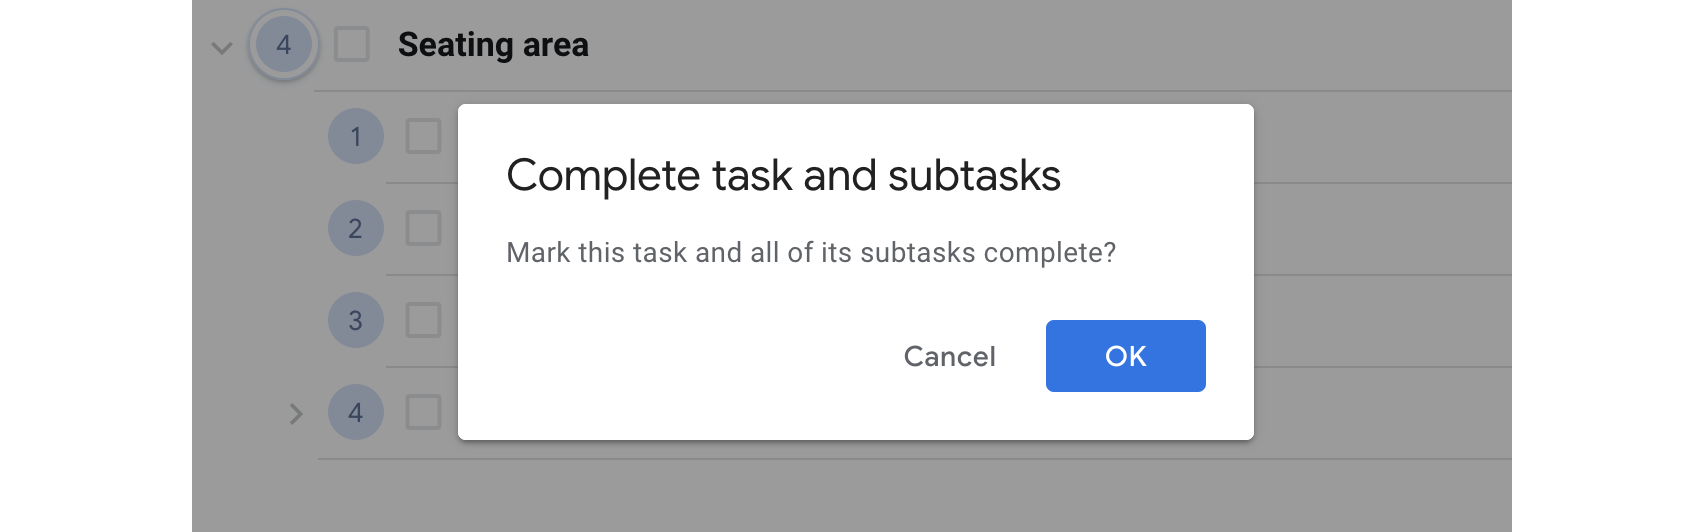 Mark all subtasks complete by completing the top level task.